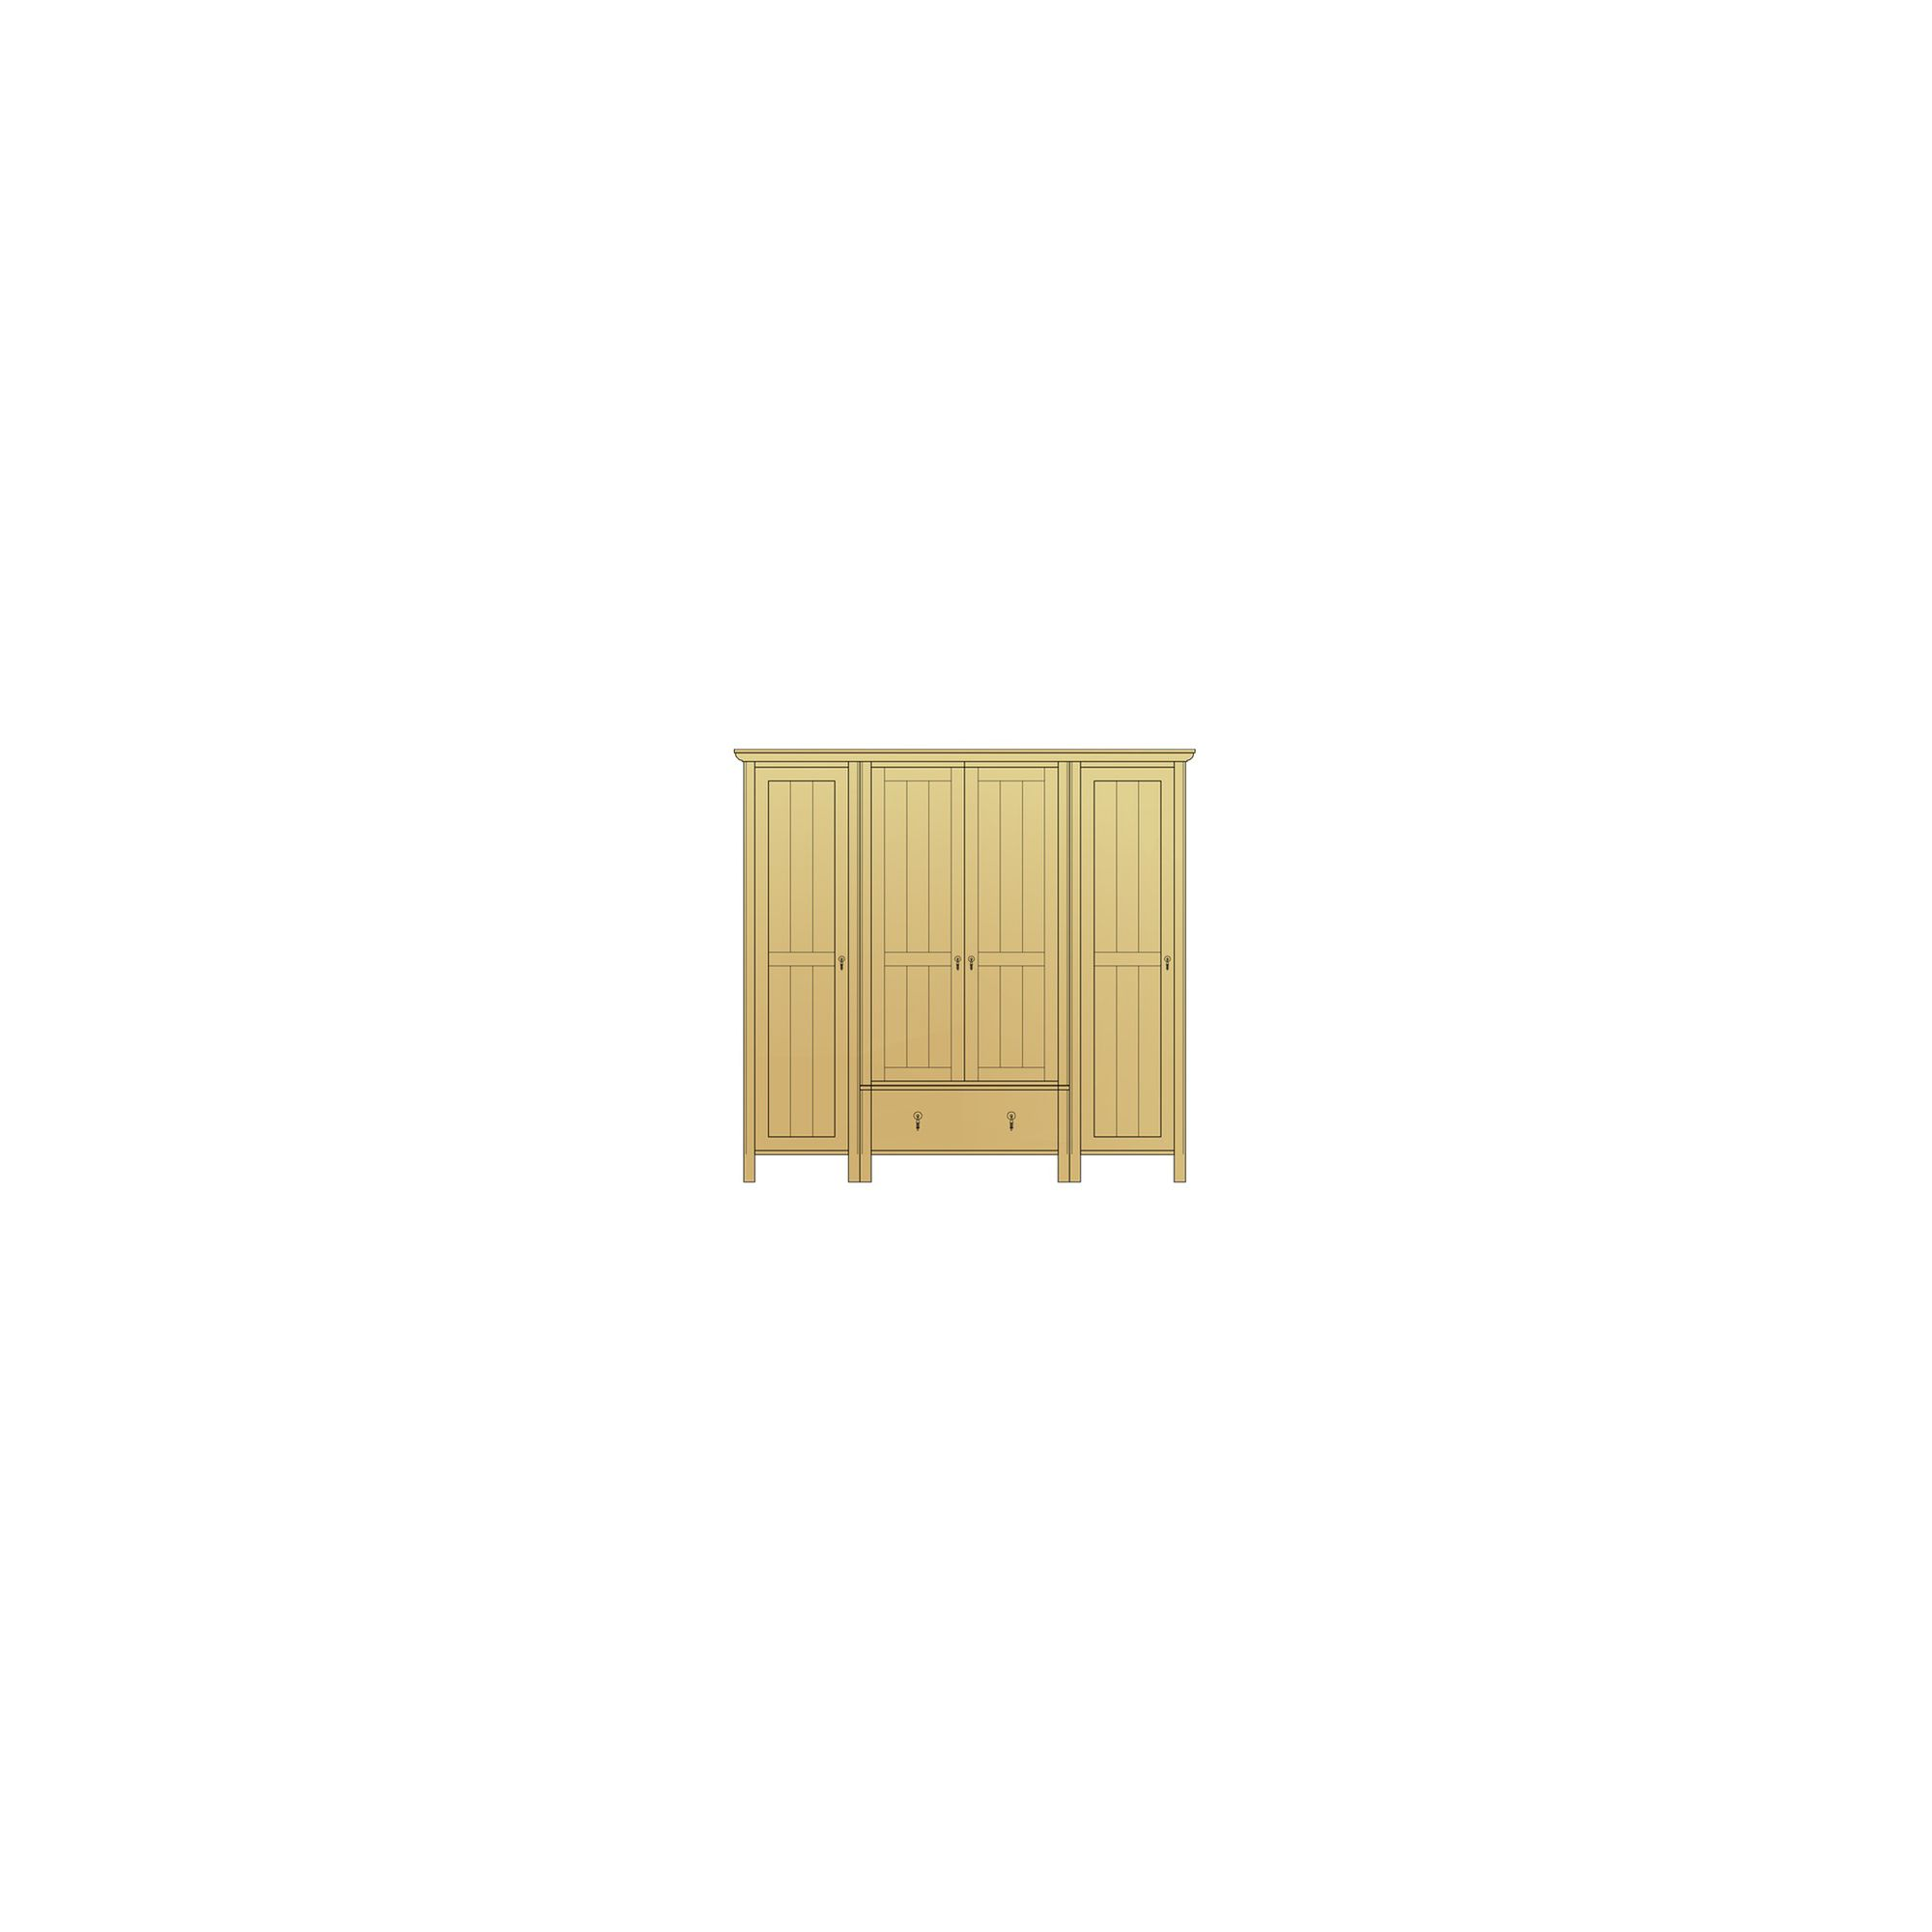 Sherry Designs Simply Bedroom 4 Door 1 Drawer Combination Oak Wardrobe at Tesco Direct